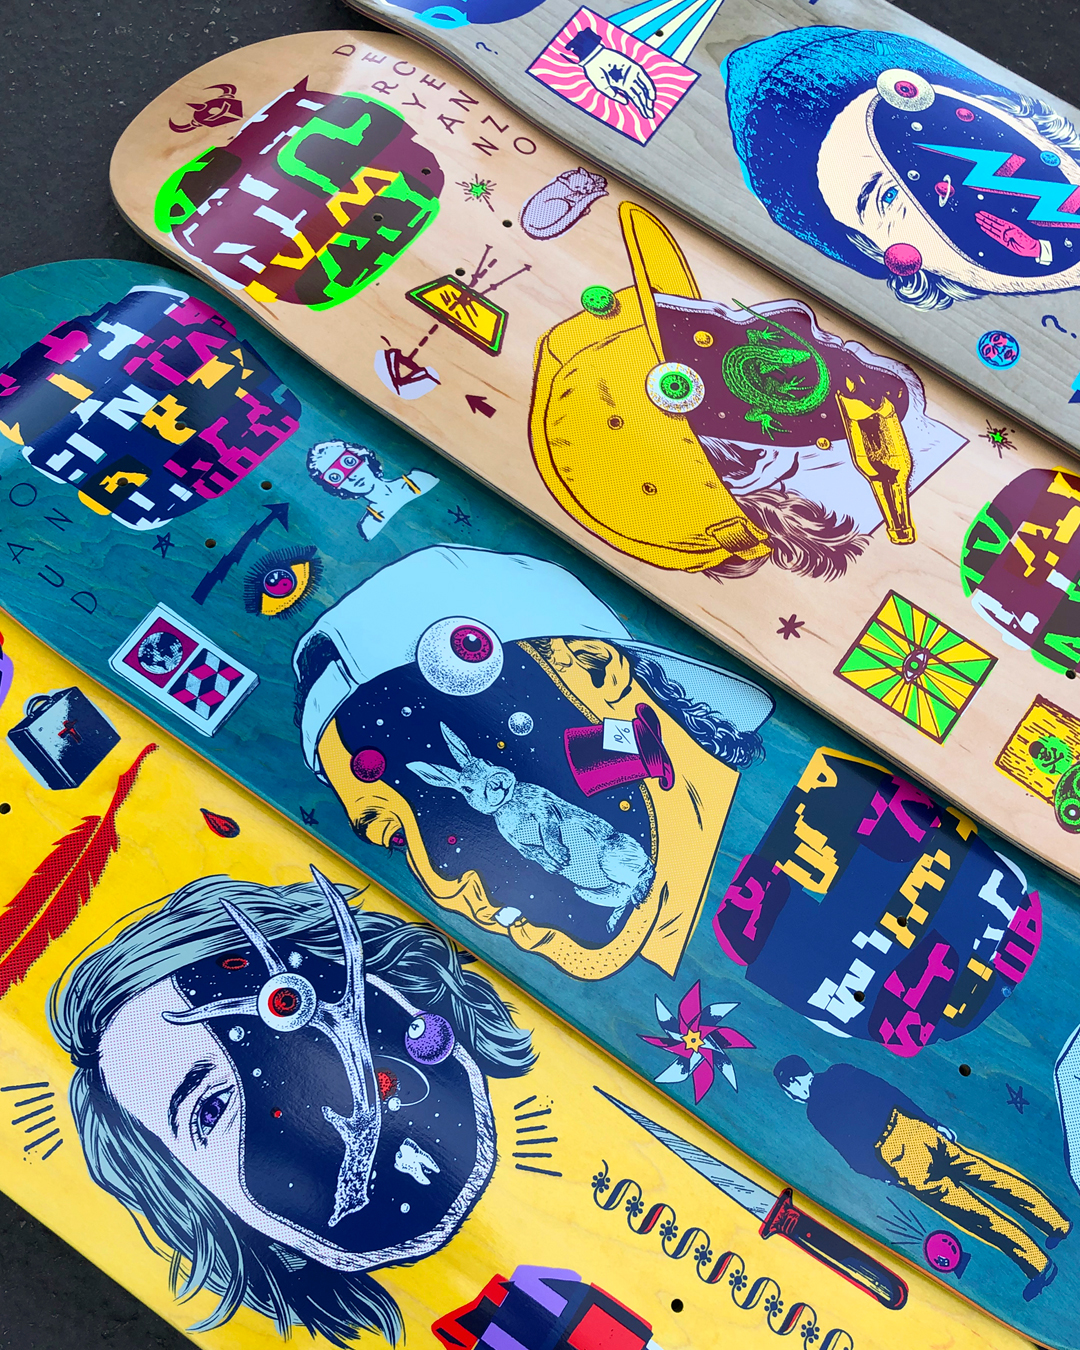 Morning Breath Inc Darkstar Skateboards 23